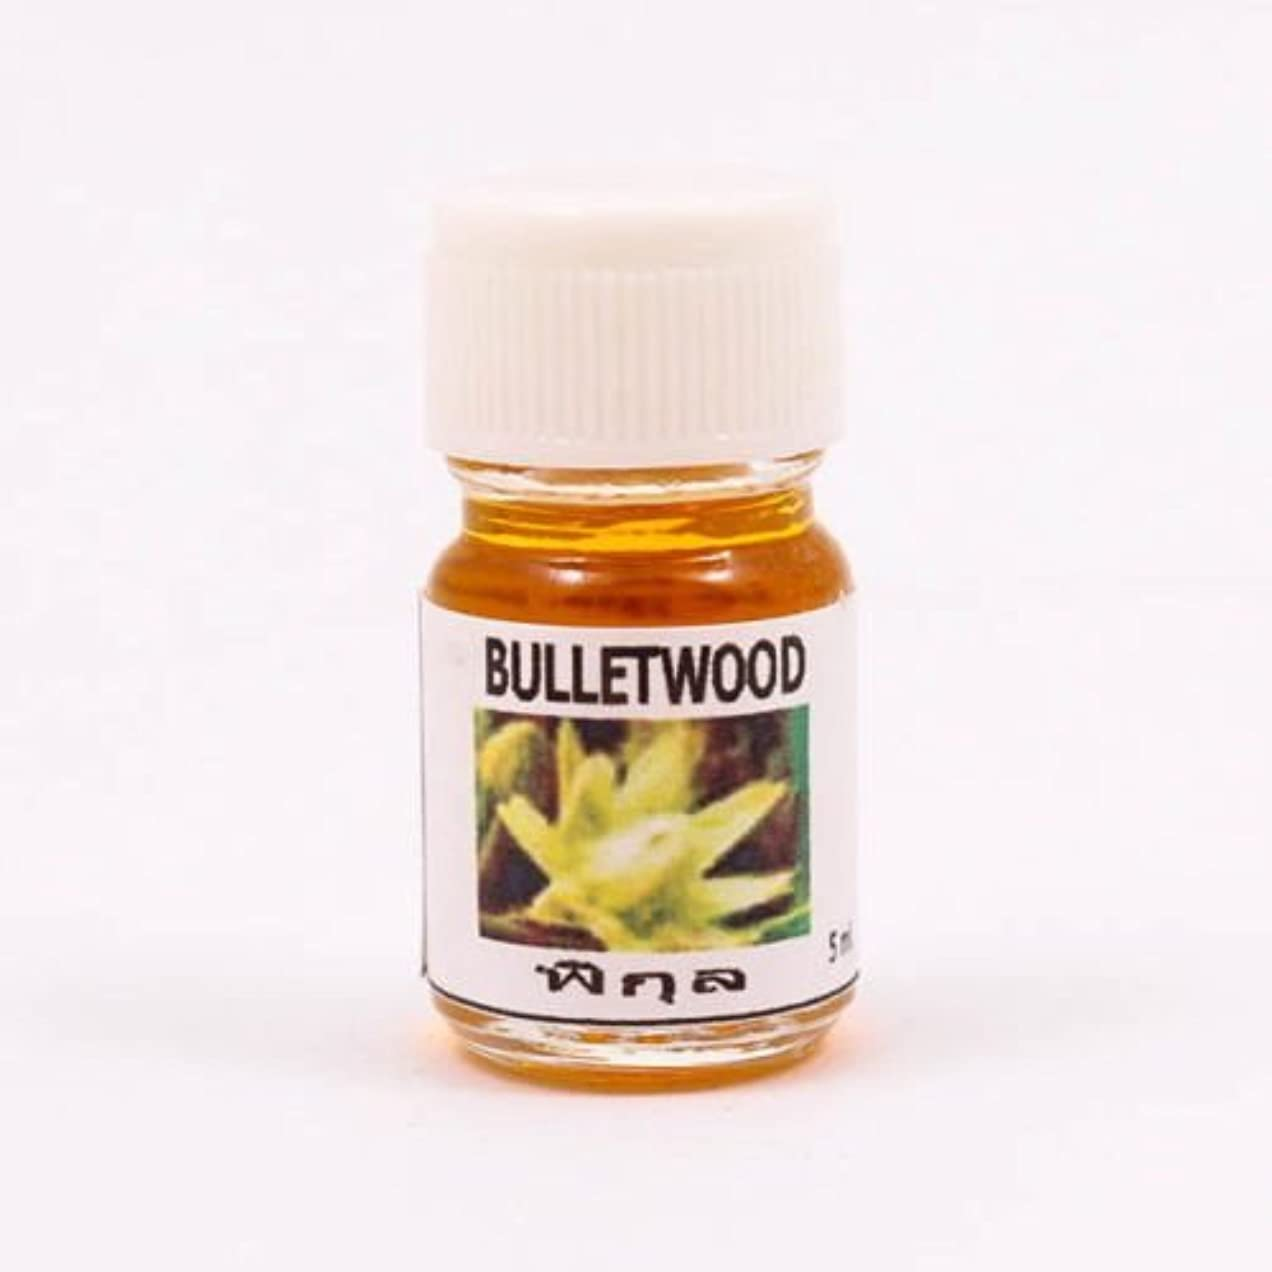 それに応じて外交官割り当てます6X Bulletwood Aroma Fragrance Essential Oil 5ML. Diffuser Burner Therapy